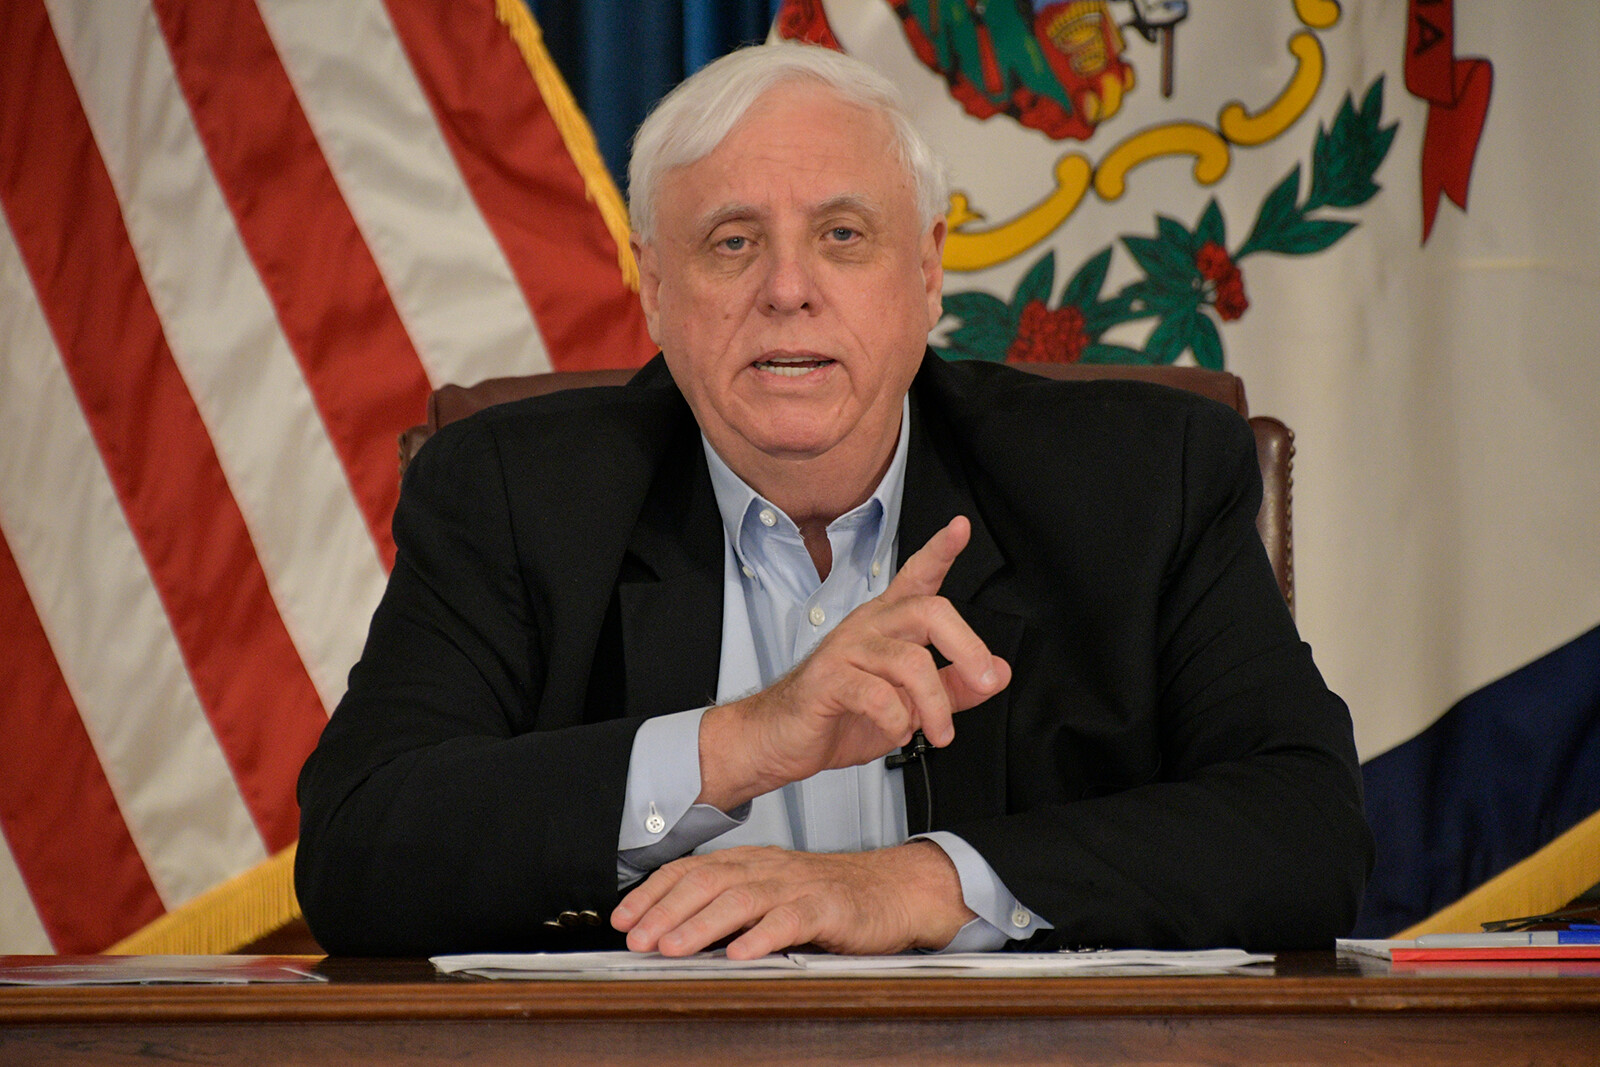 West Virginia GOP governor: 'If you're not vaccinated, you're part of the problem'